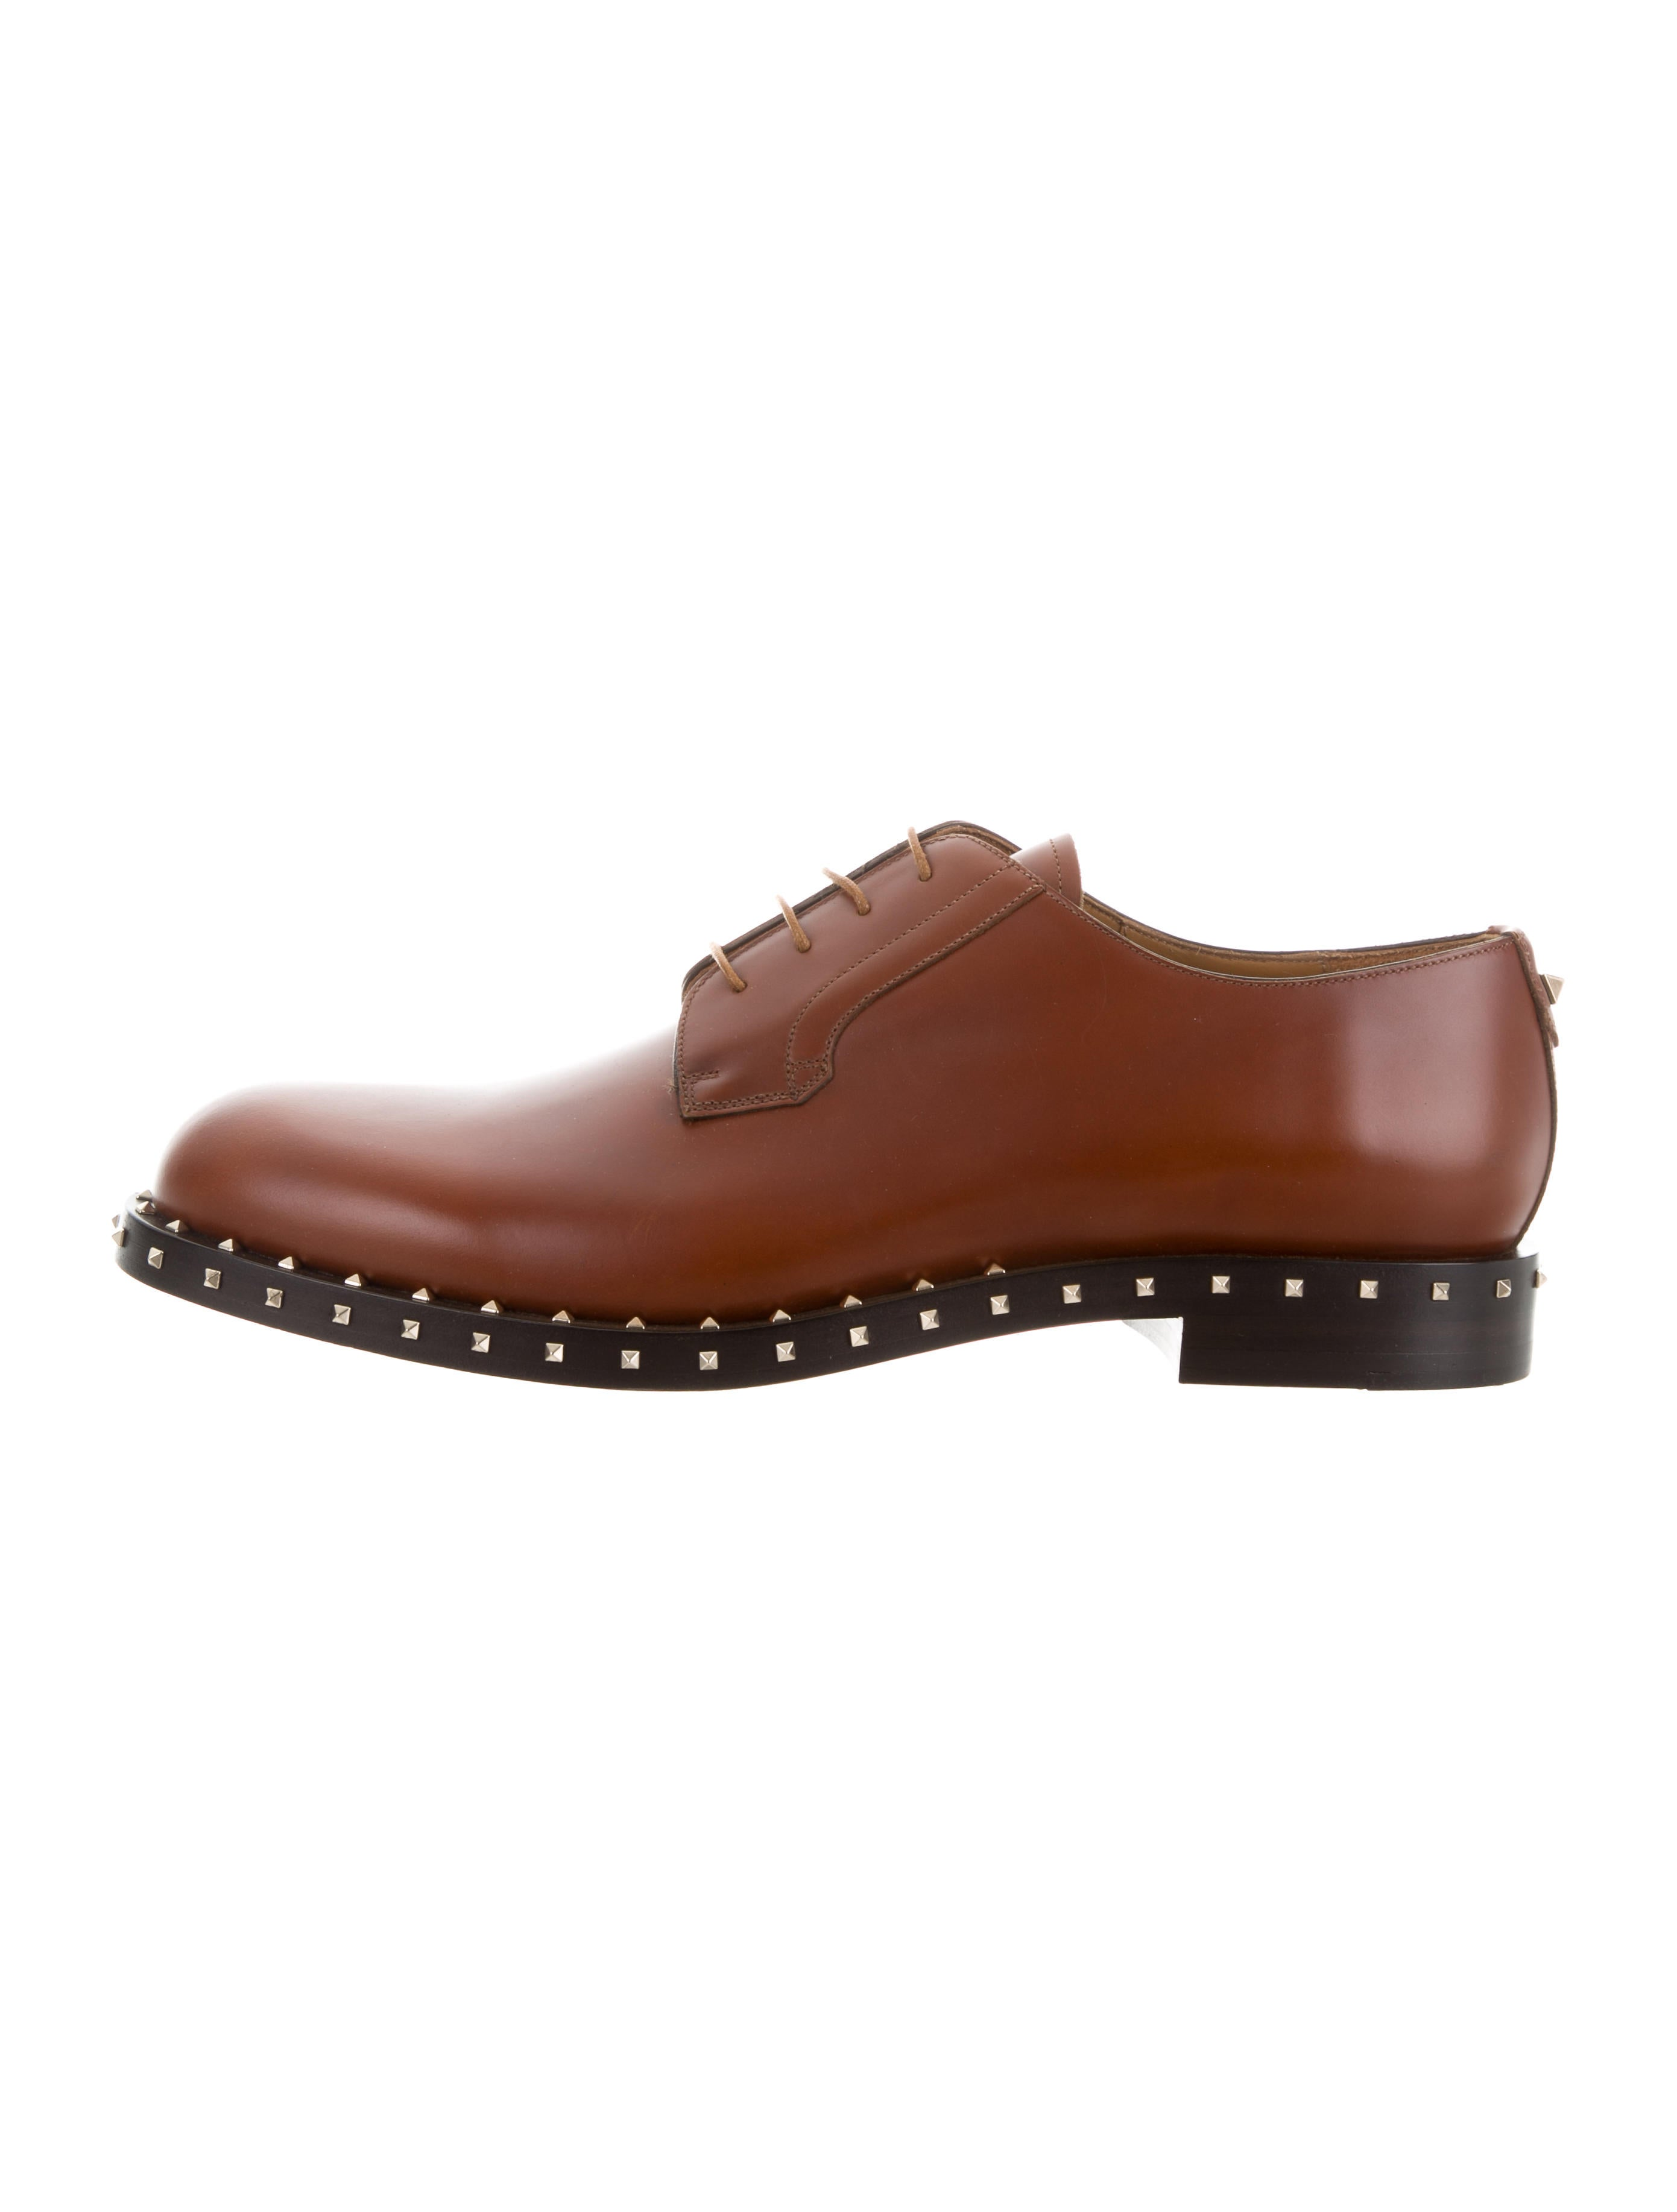 discount original Valentino Leather Embellished Oxfords discount in China outlet cheap price sale best seller 7Z8Ul